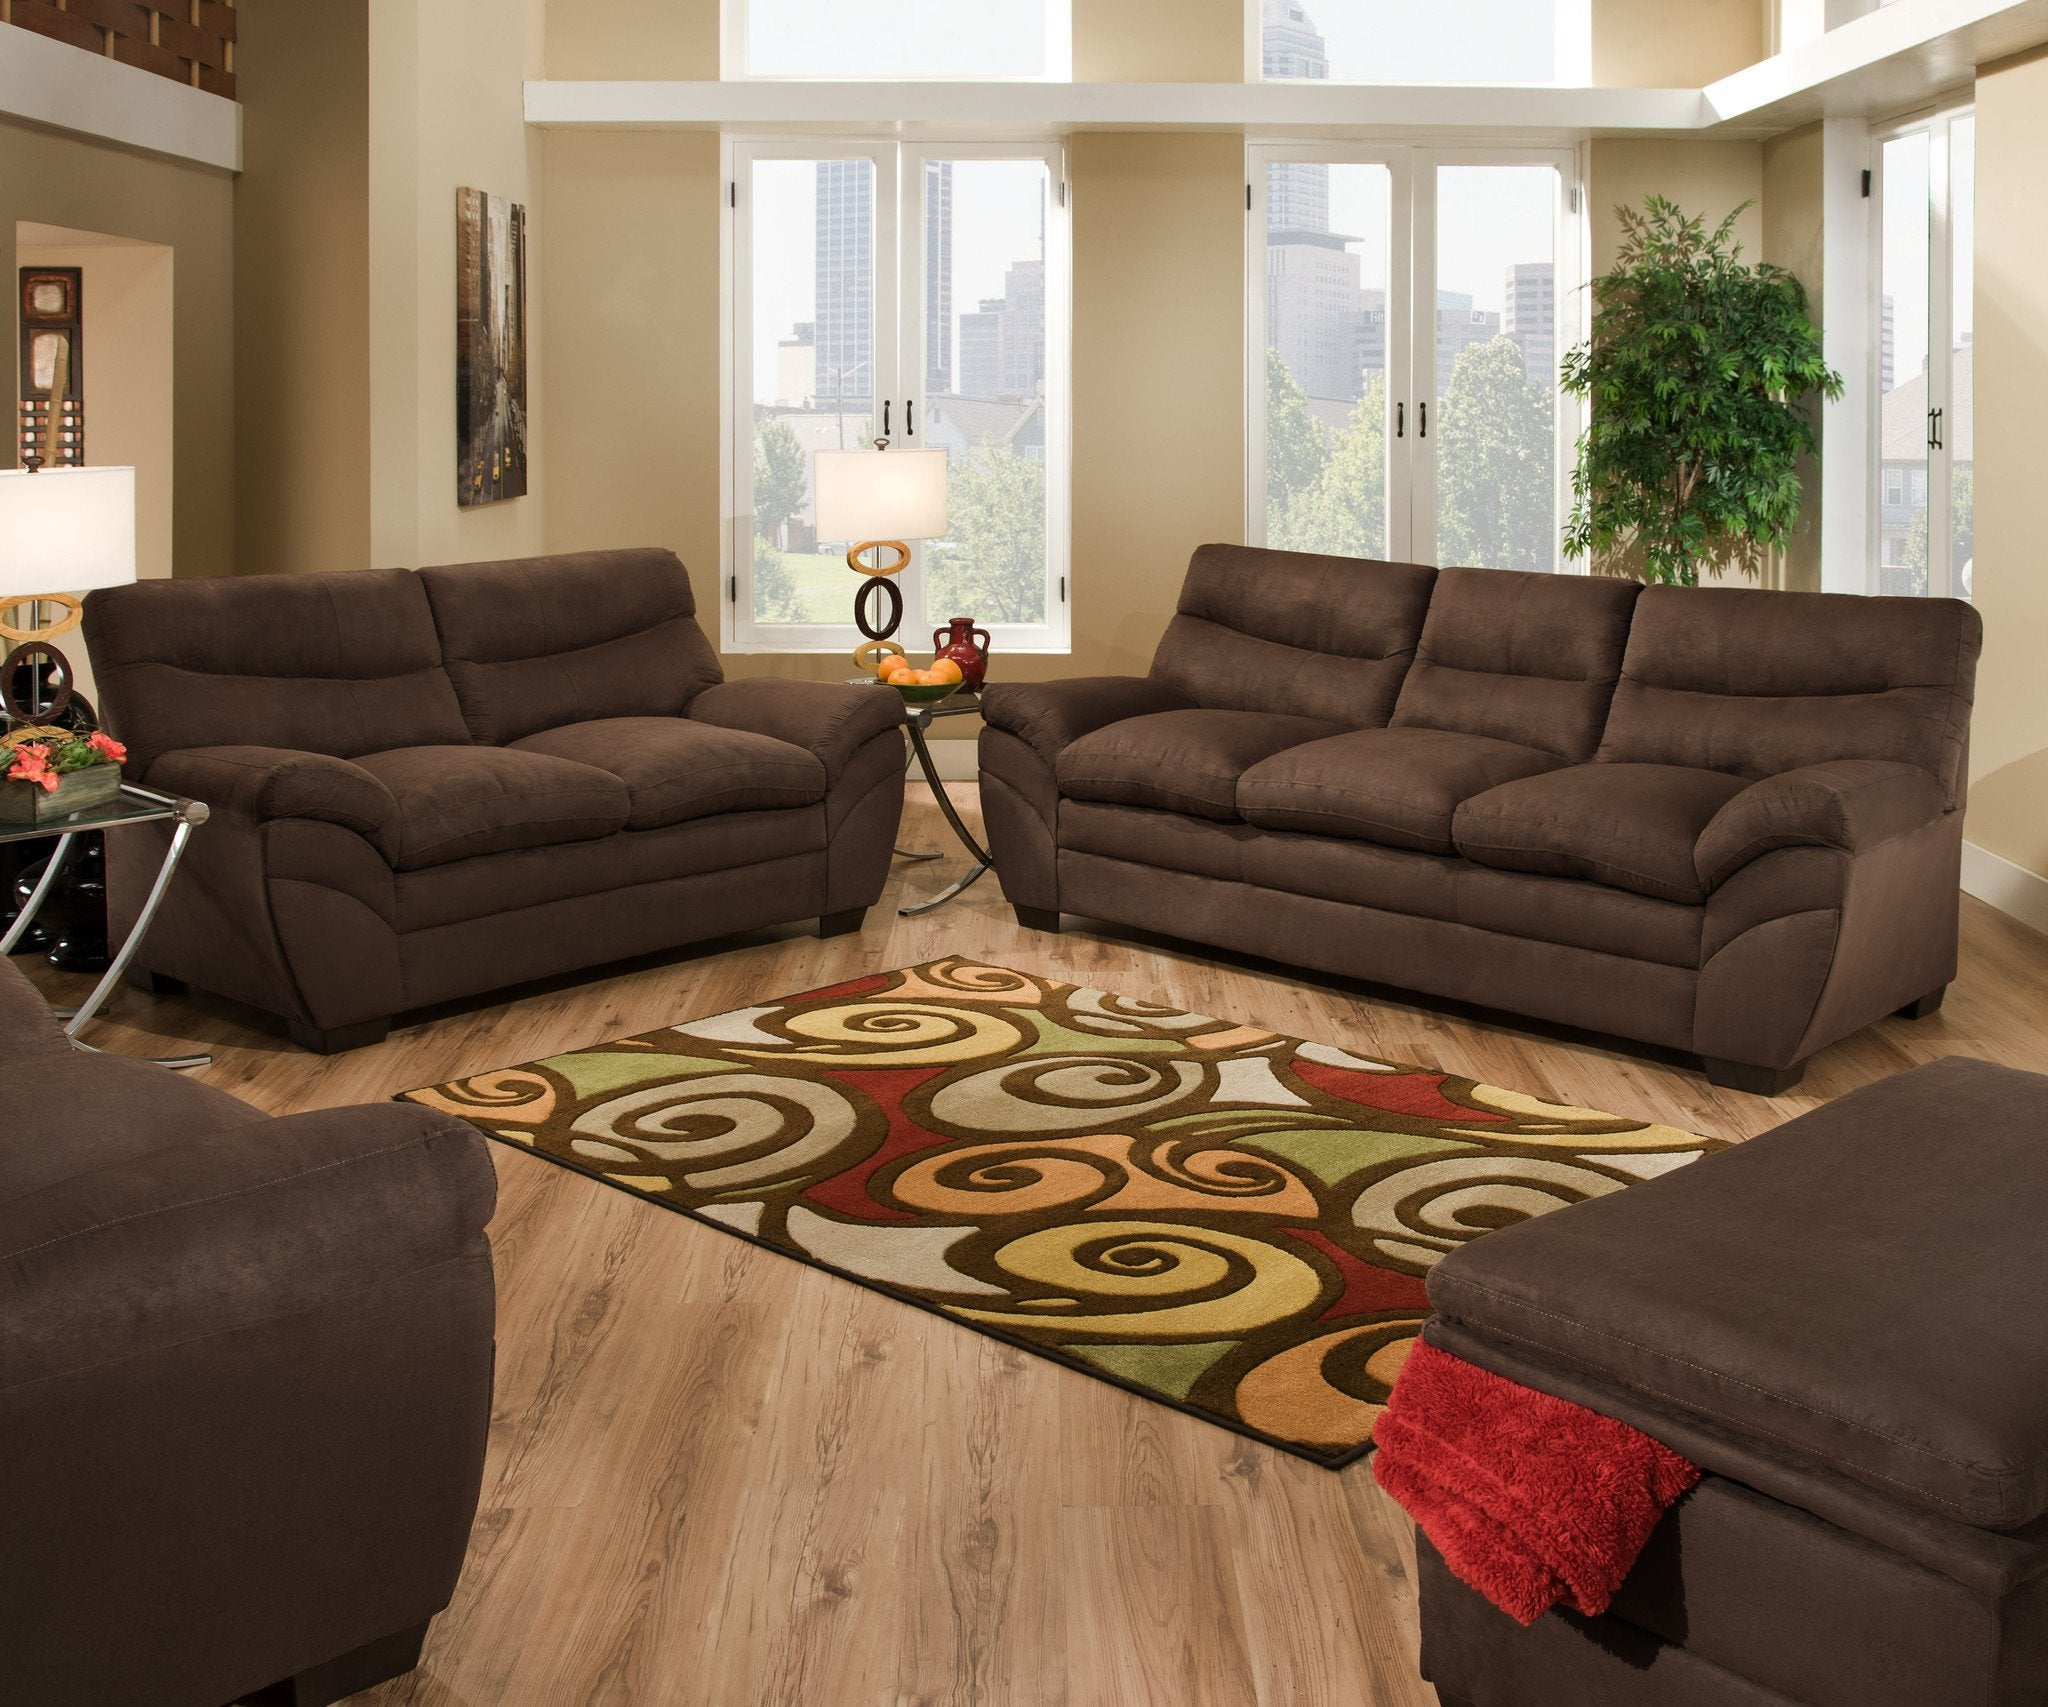 Luna Chocolate Sofa Loveseat By Simmons Beautyrest For The  # Muebles Luan Arbo